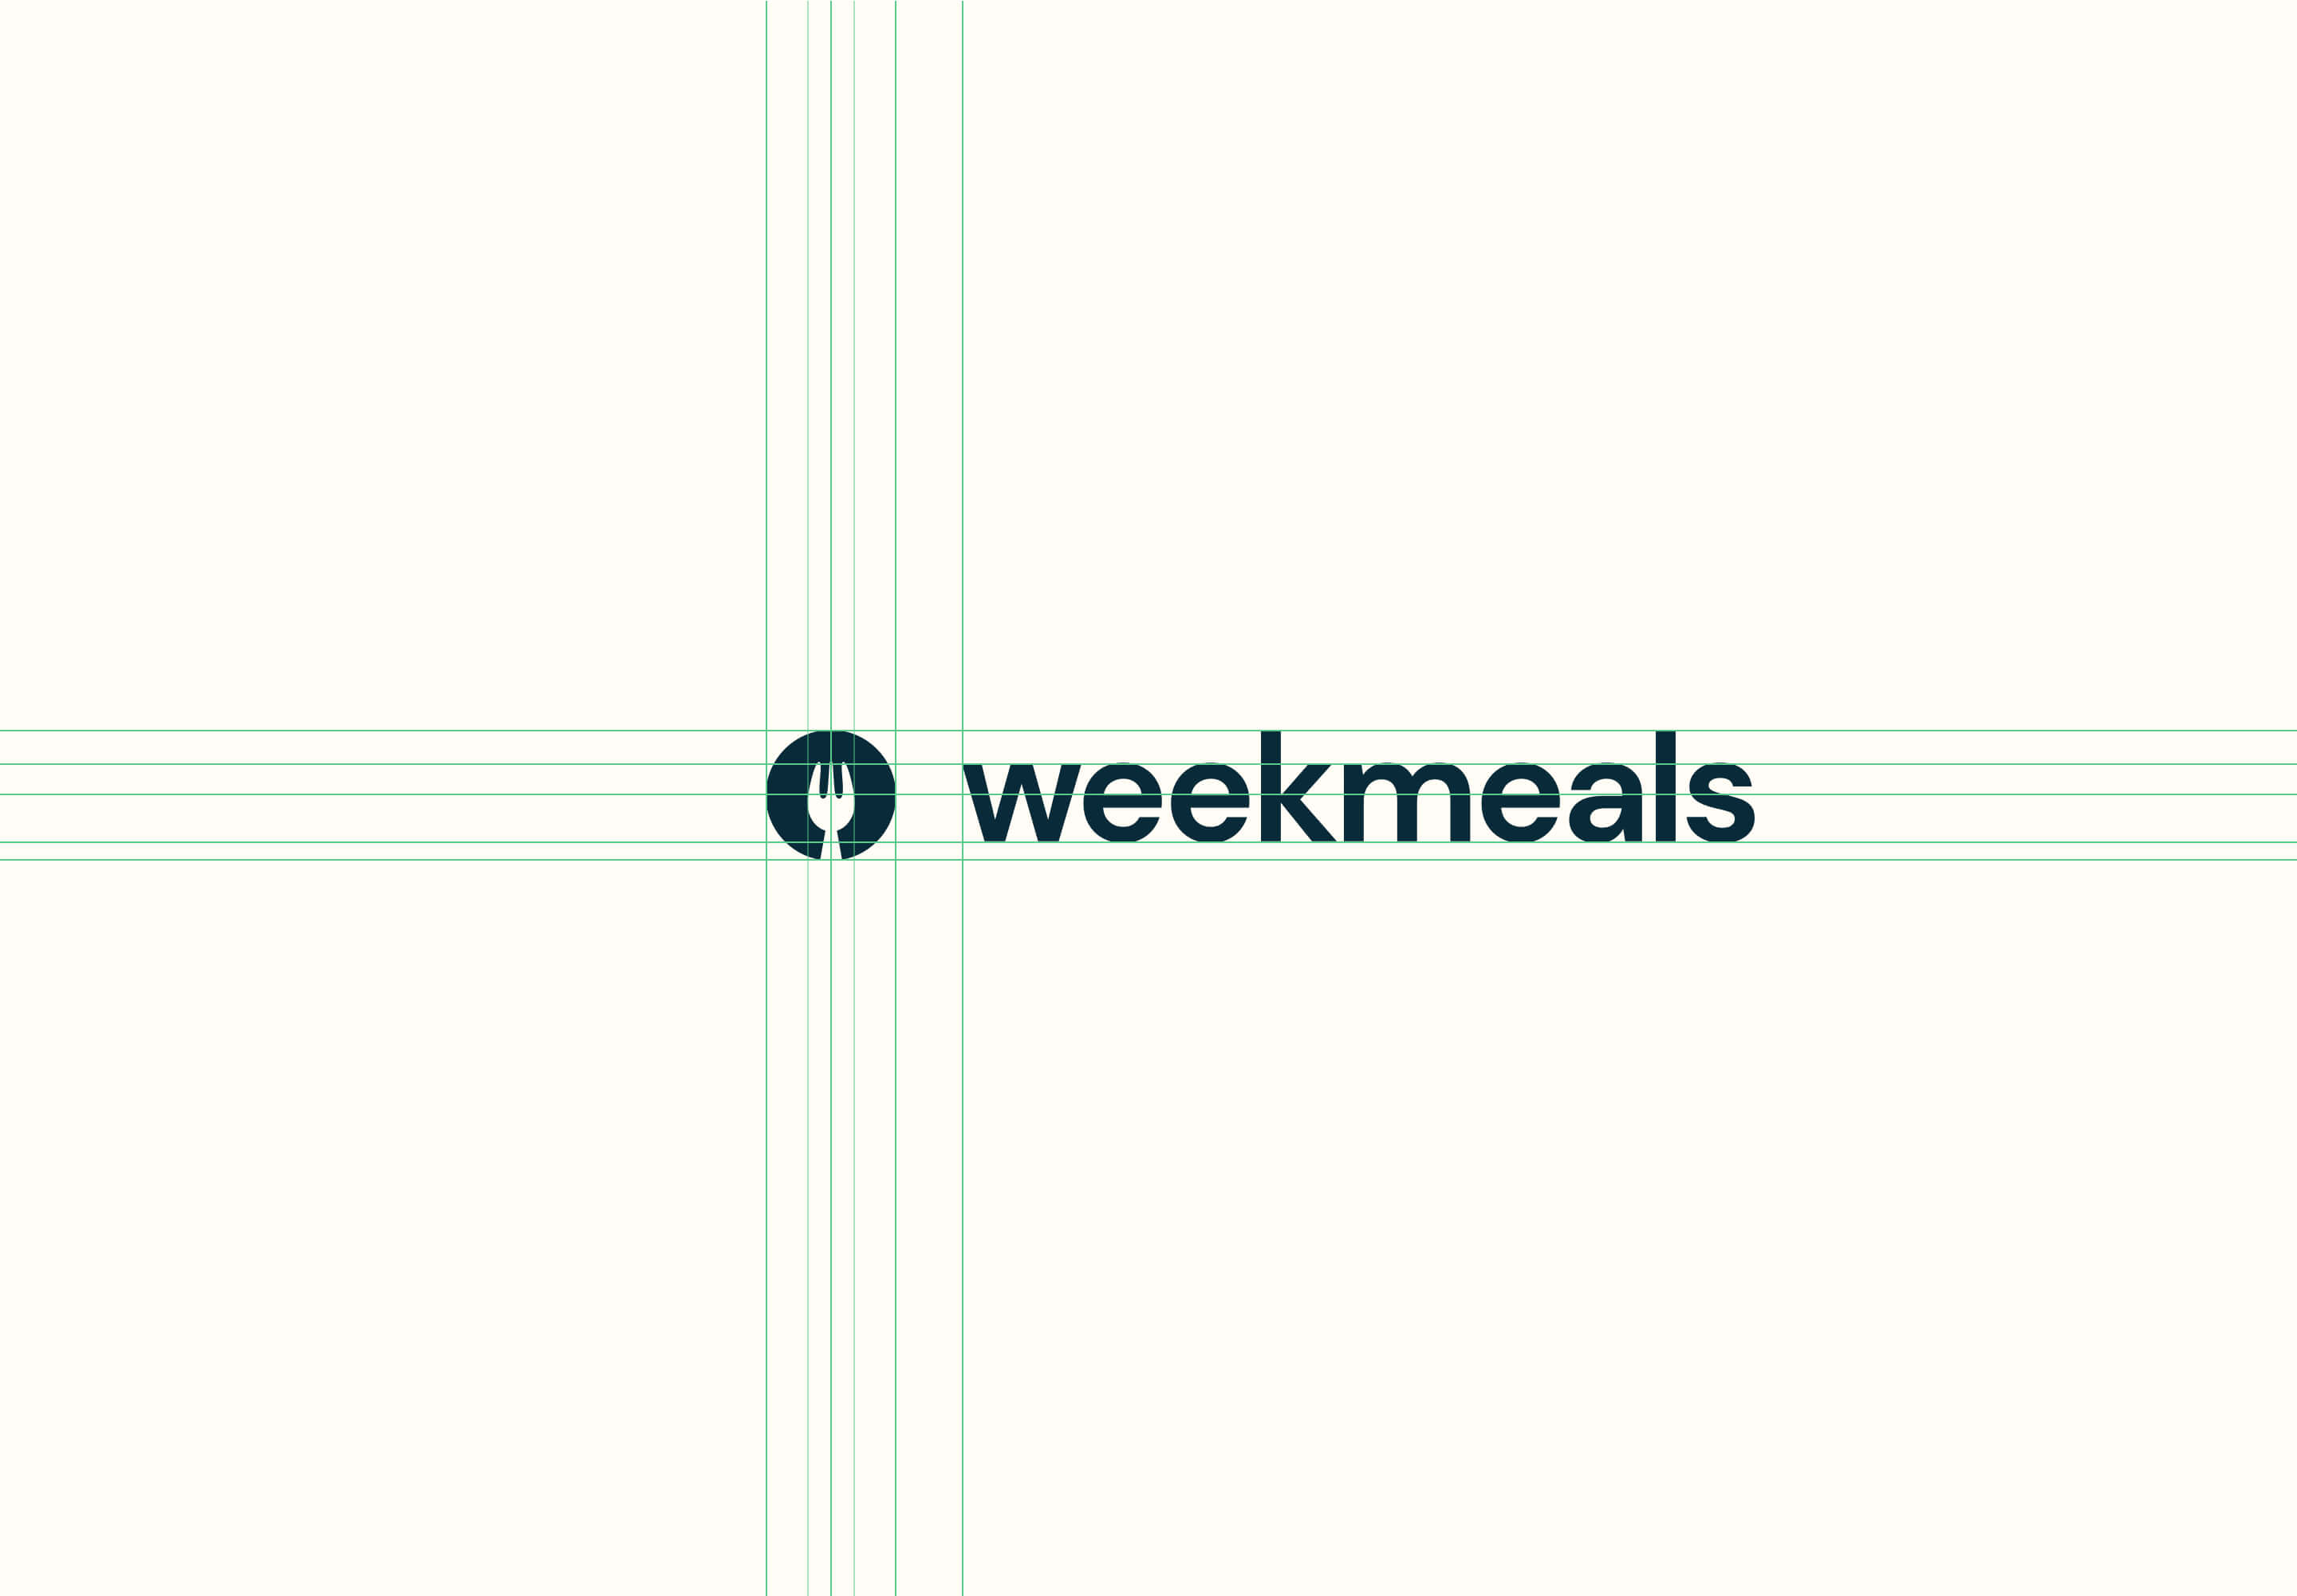 weekmeals-case1